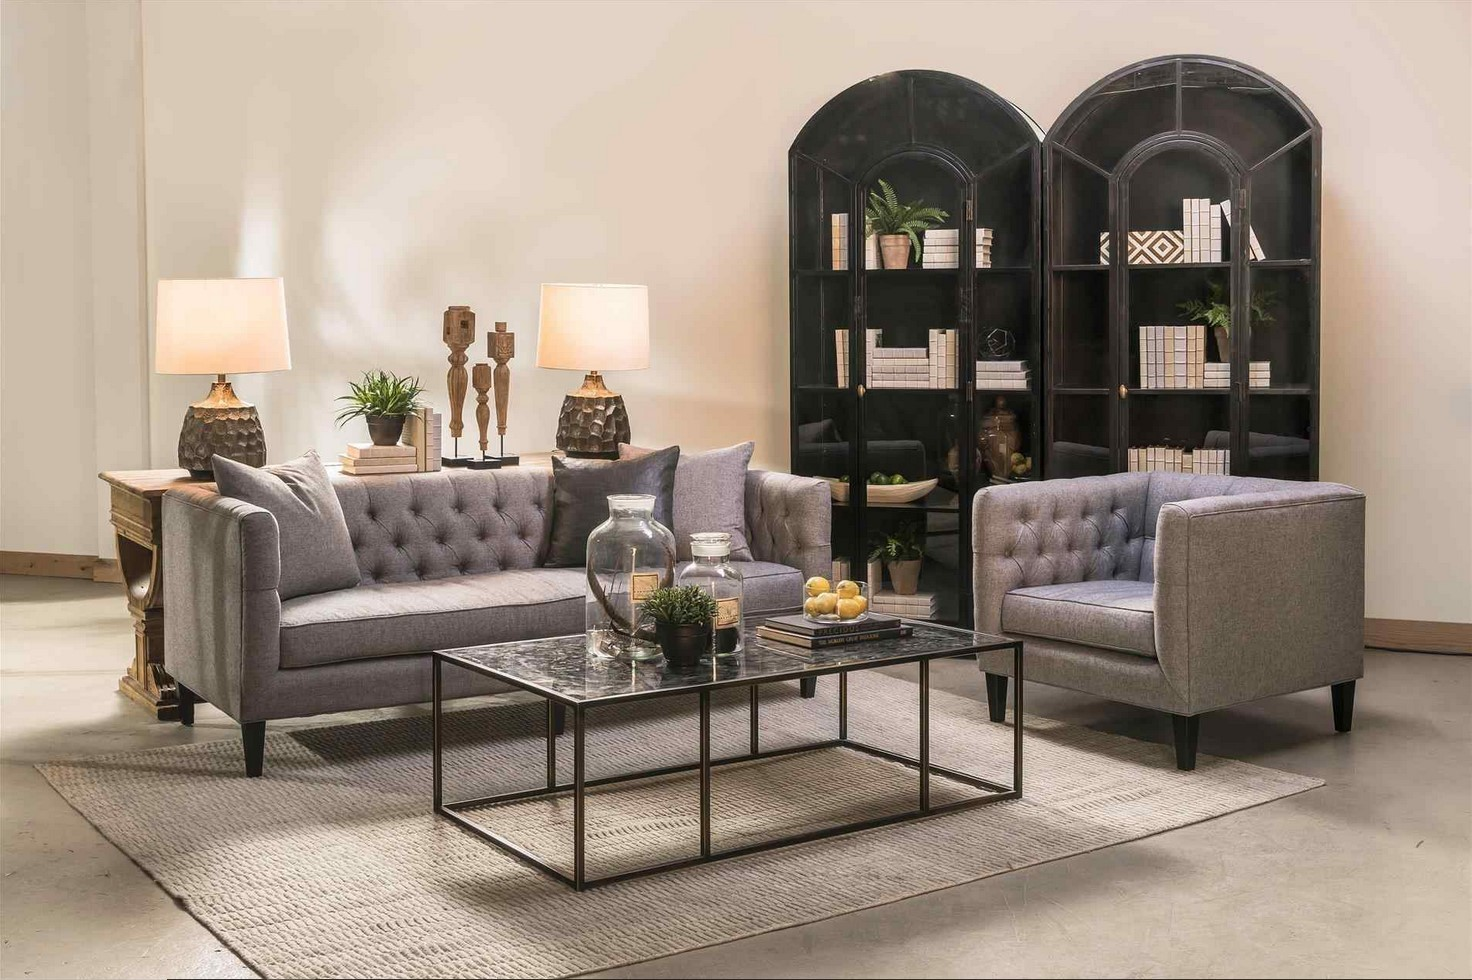 Furniture Stores Newport News Va